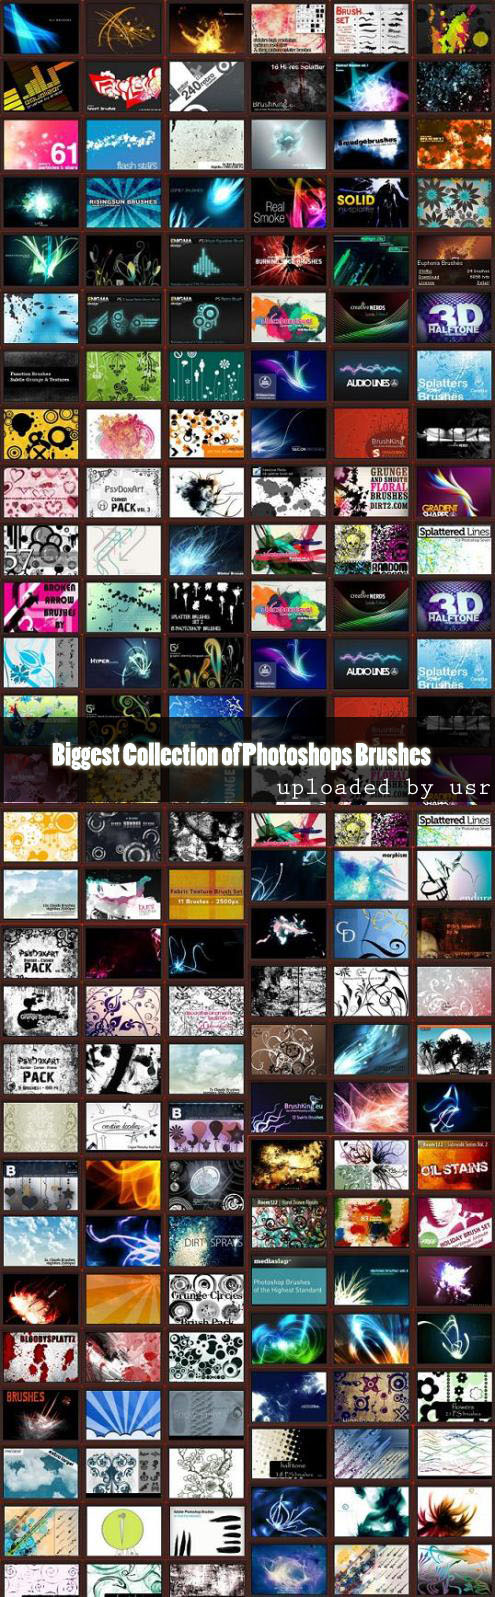 biggest Collection of photoshops Brushes